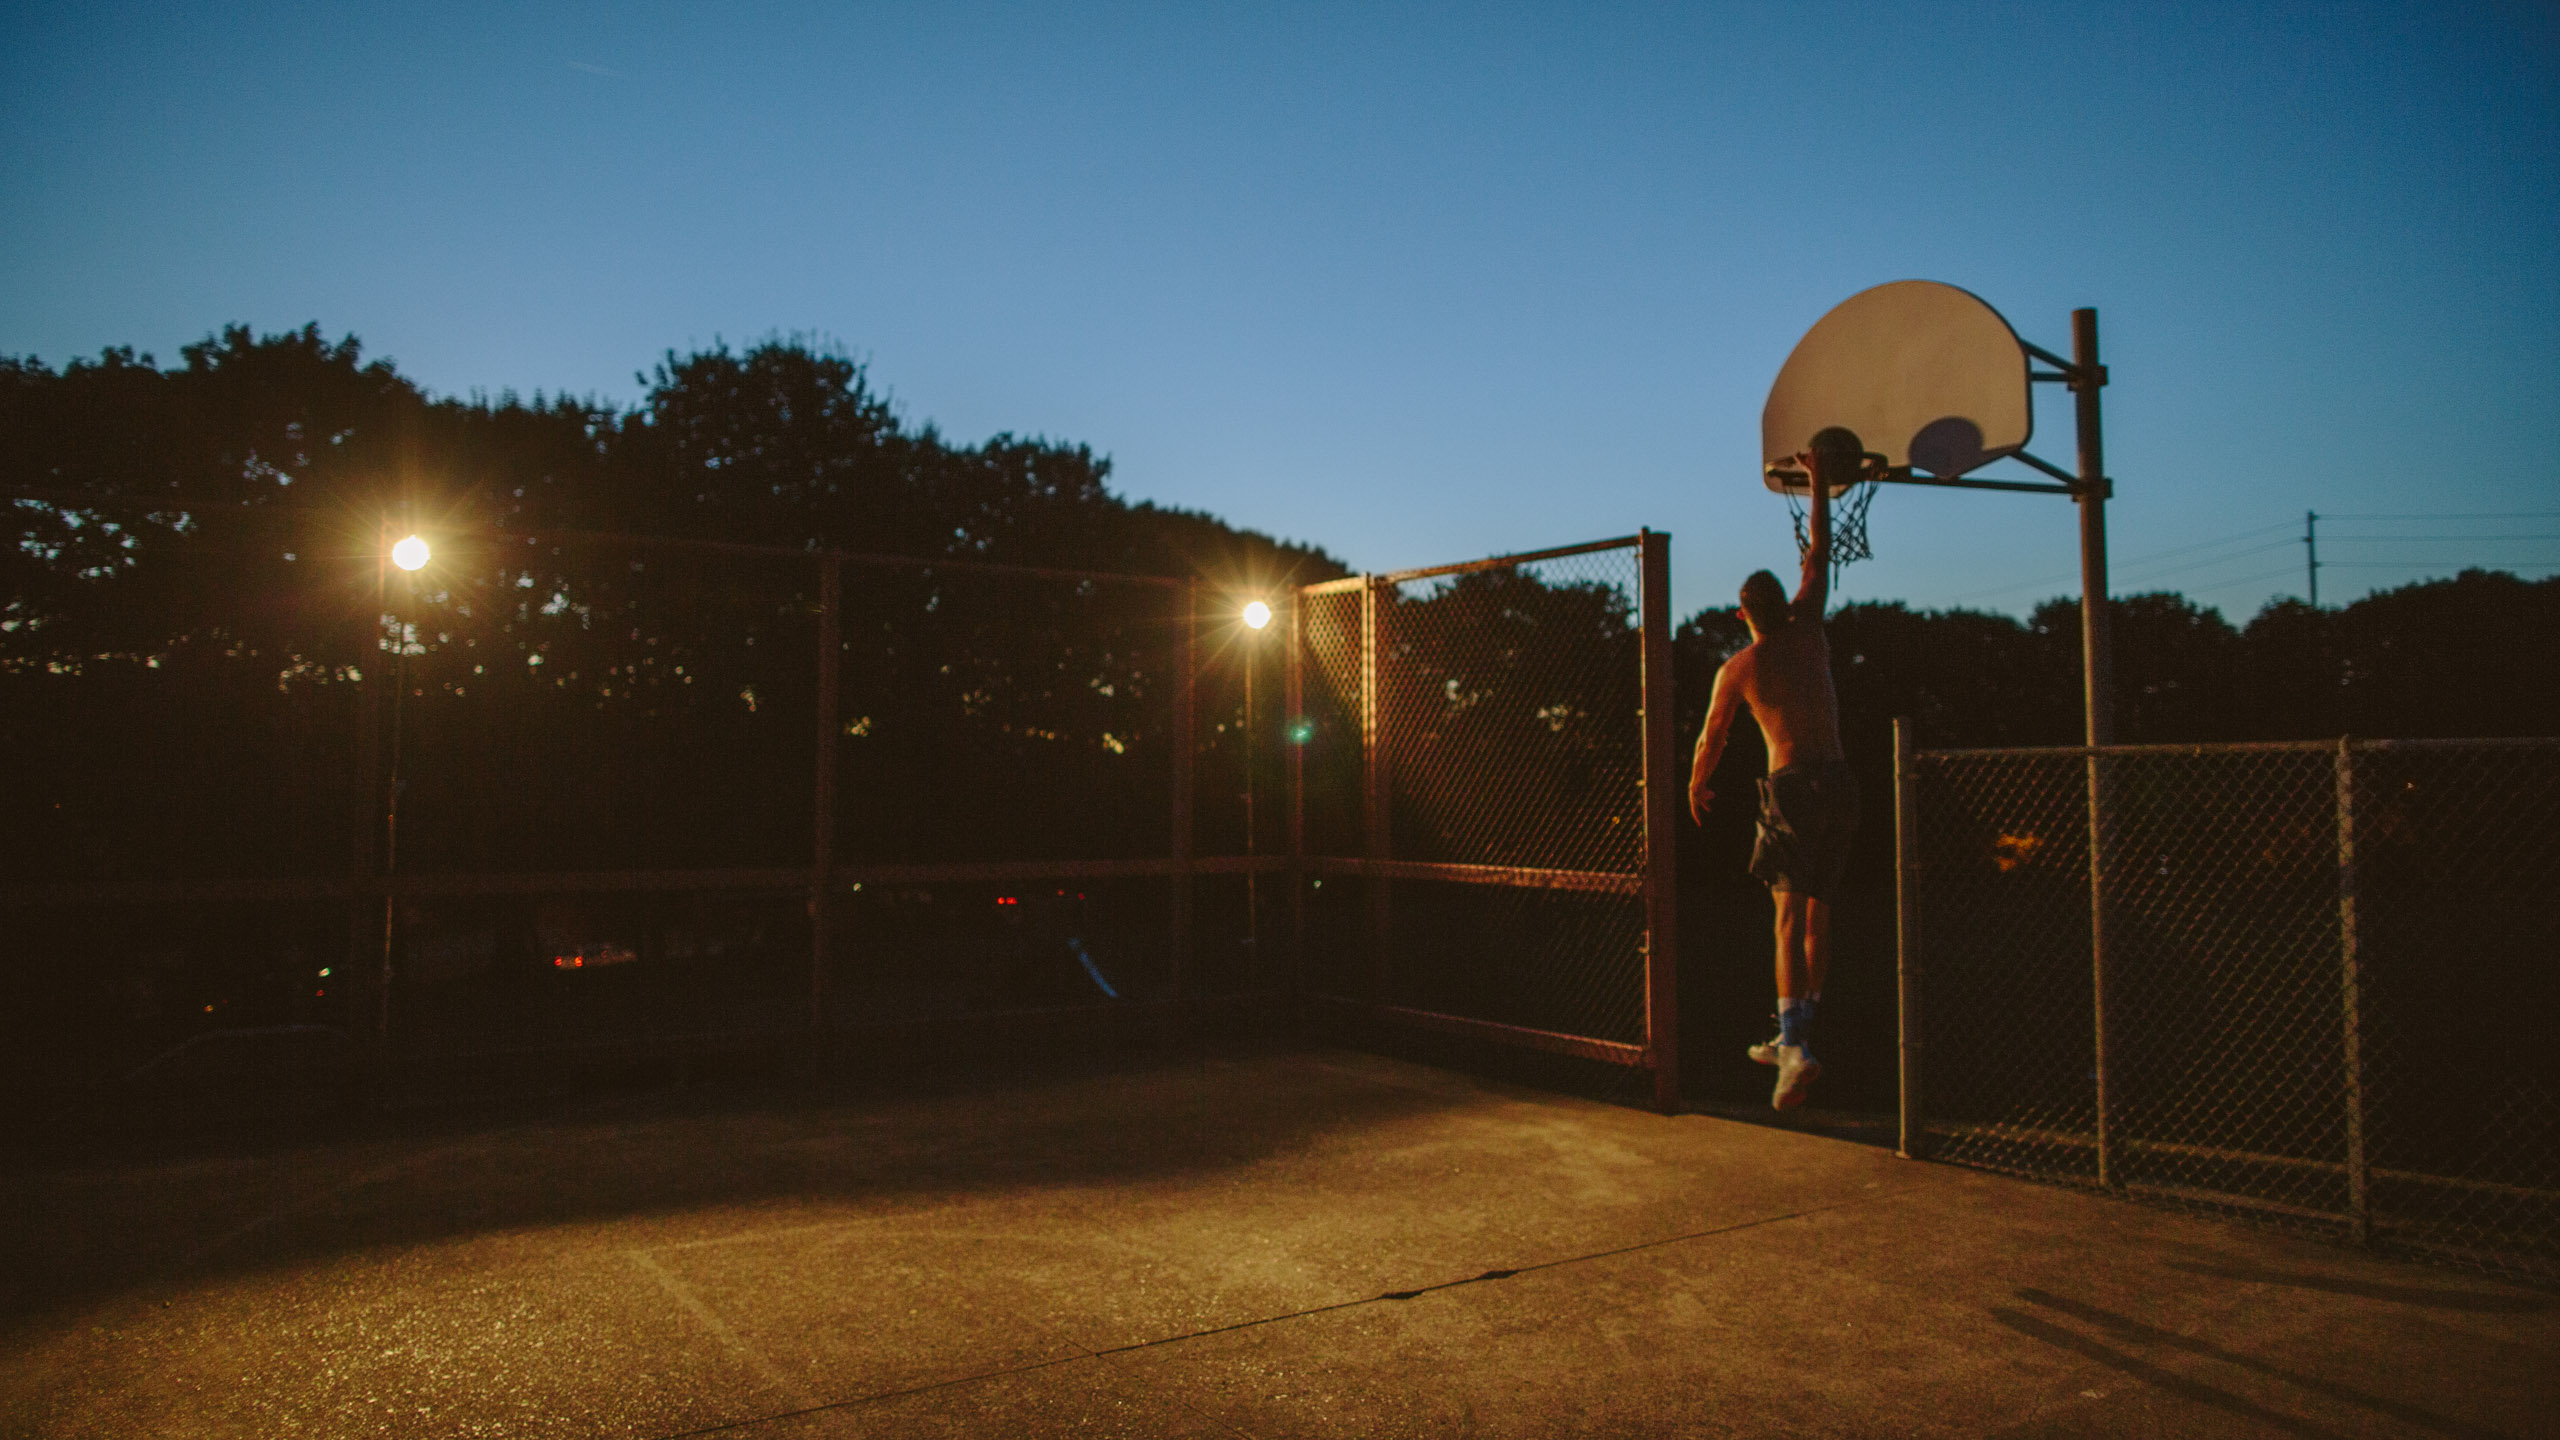 Solo Basketball Session